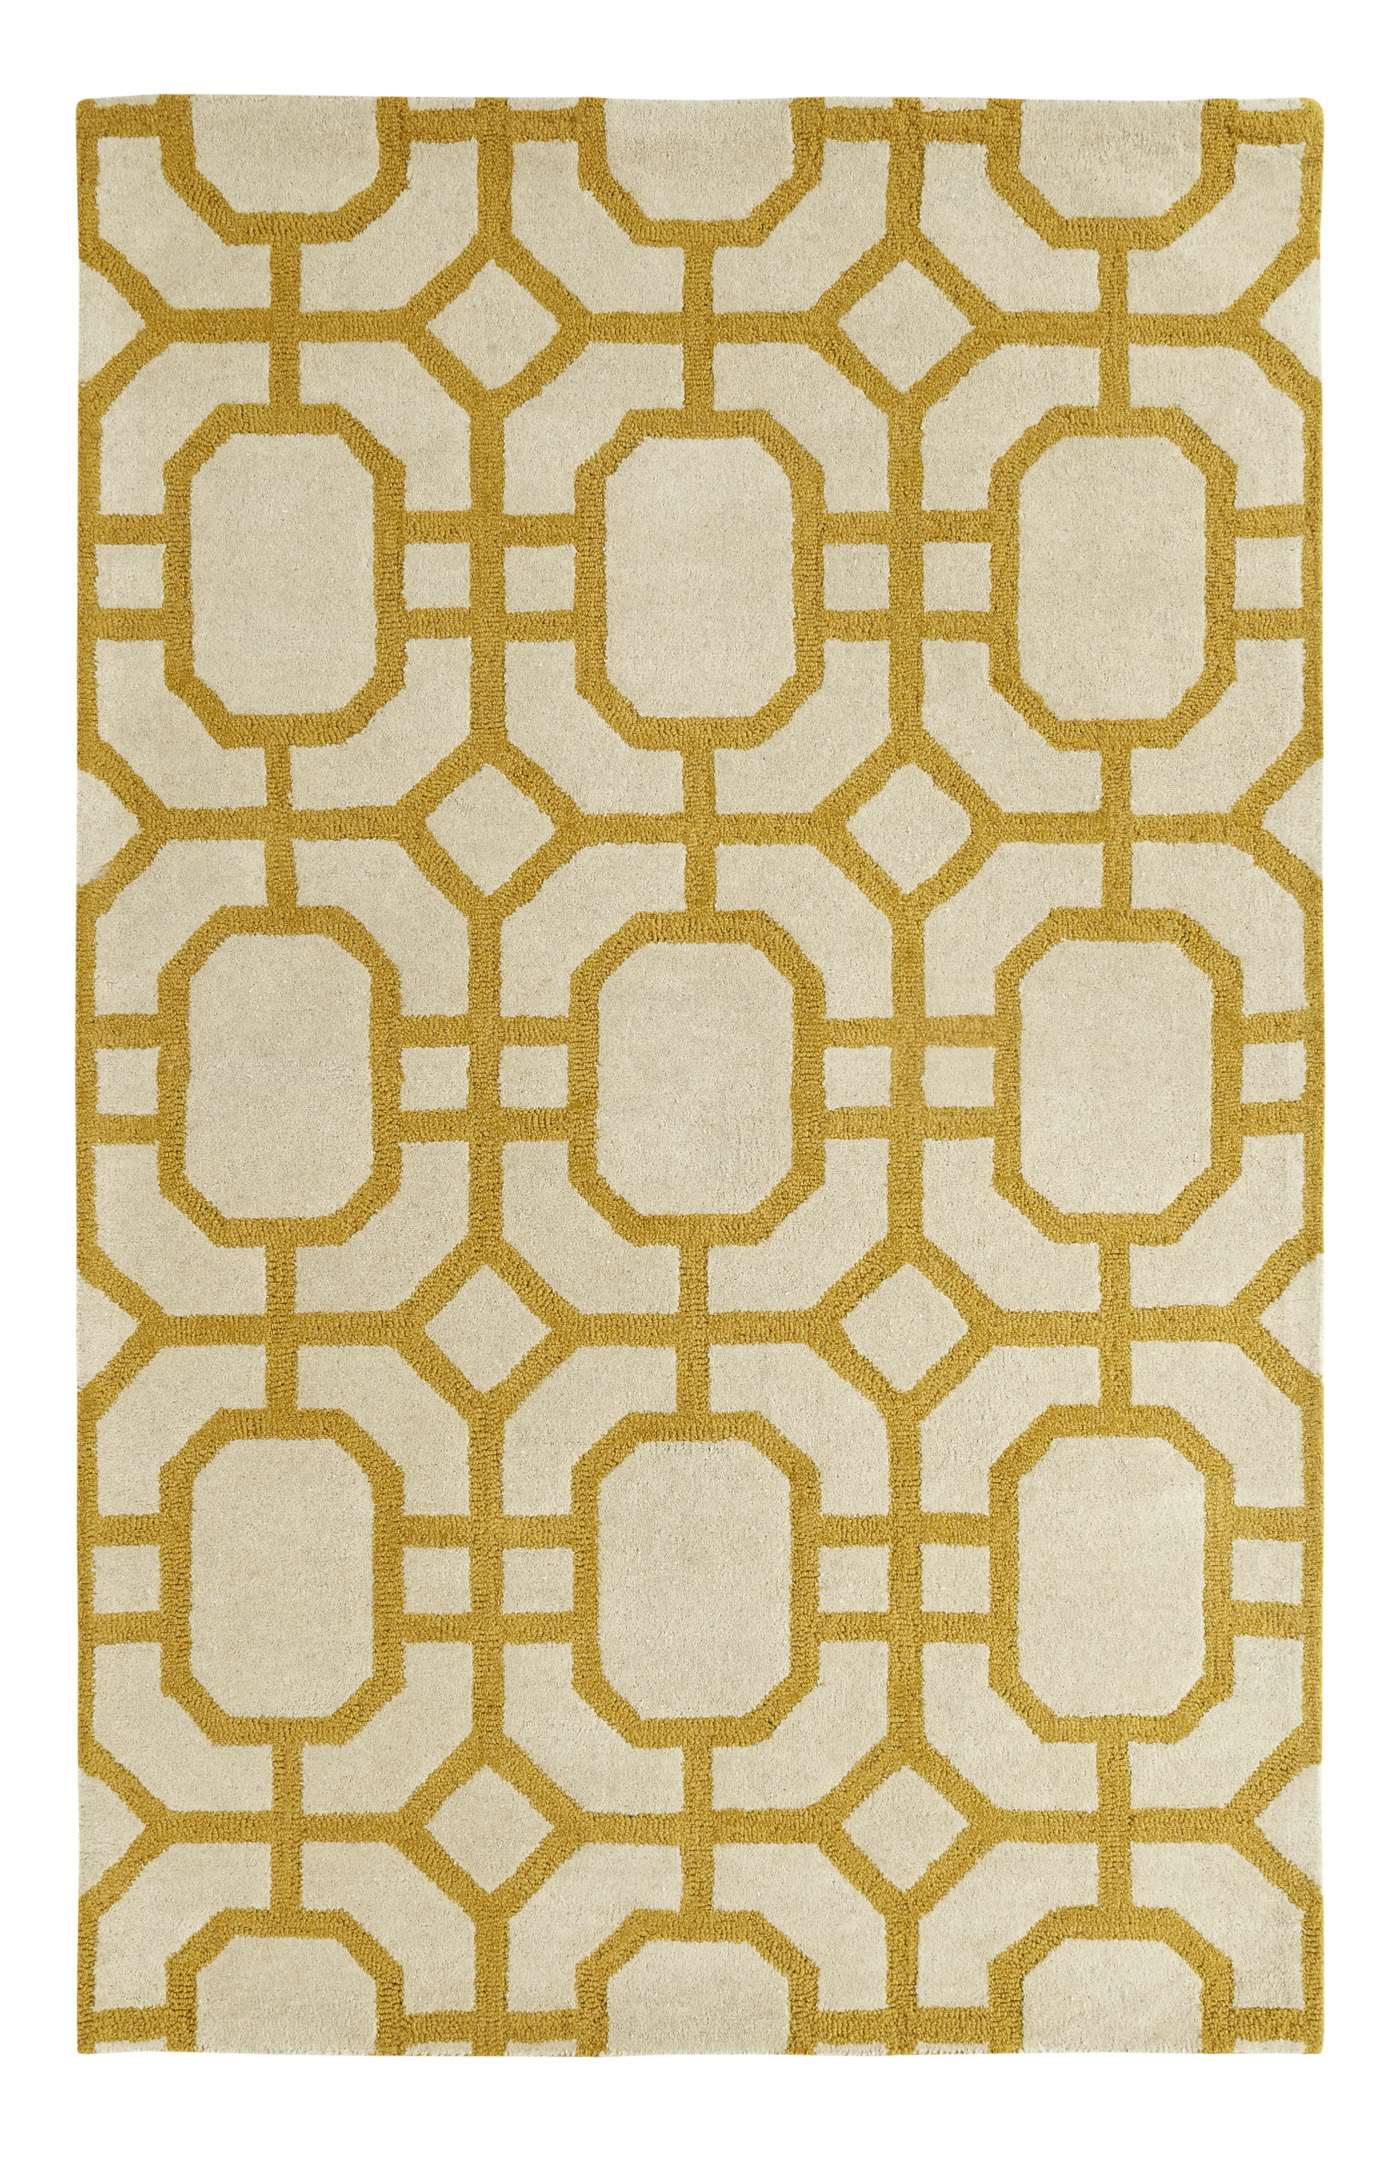 Dynamic Rugs Palace Geometric Ivory/yellow 5599 Area Rug